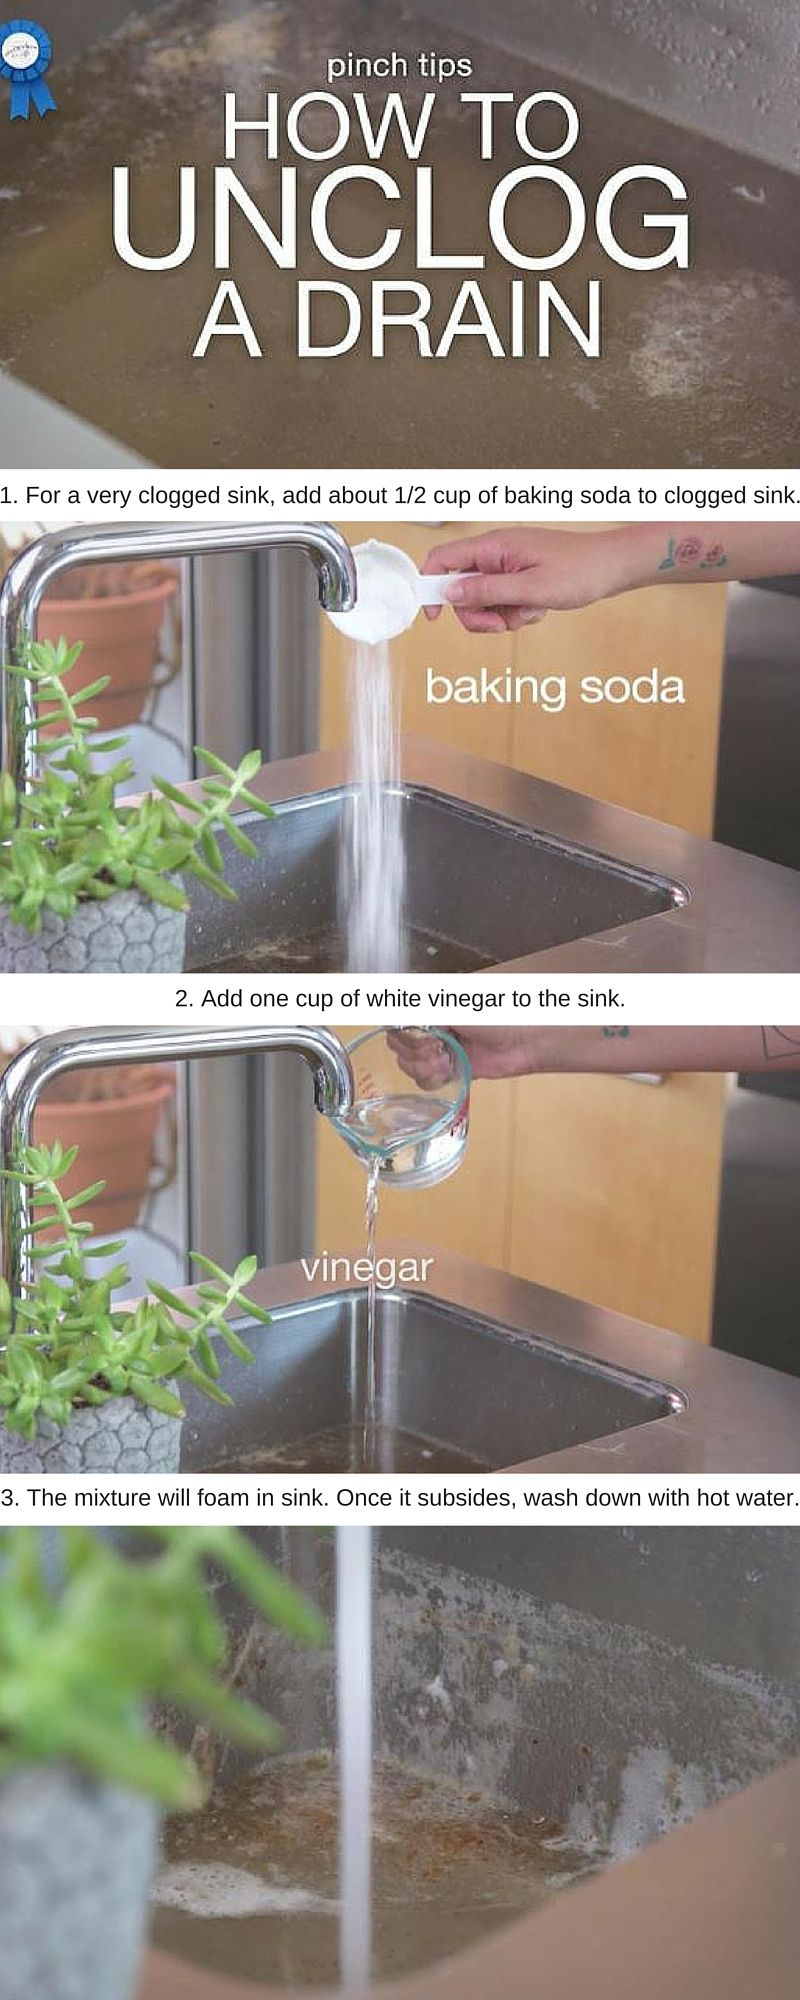 Unclog Kitchen Drain Hansgrohe Faucet Reviews Unclogging A Has Never Been Easier Thanks To This Tip From The Just Pinch Test